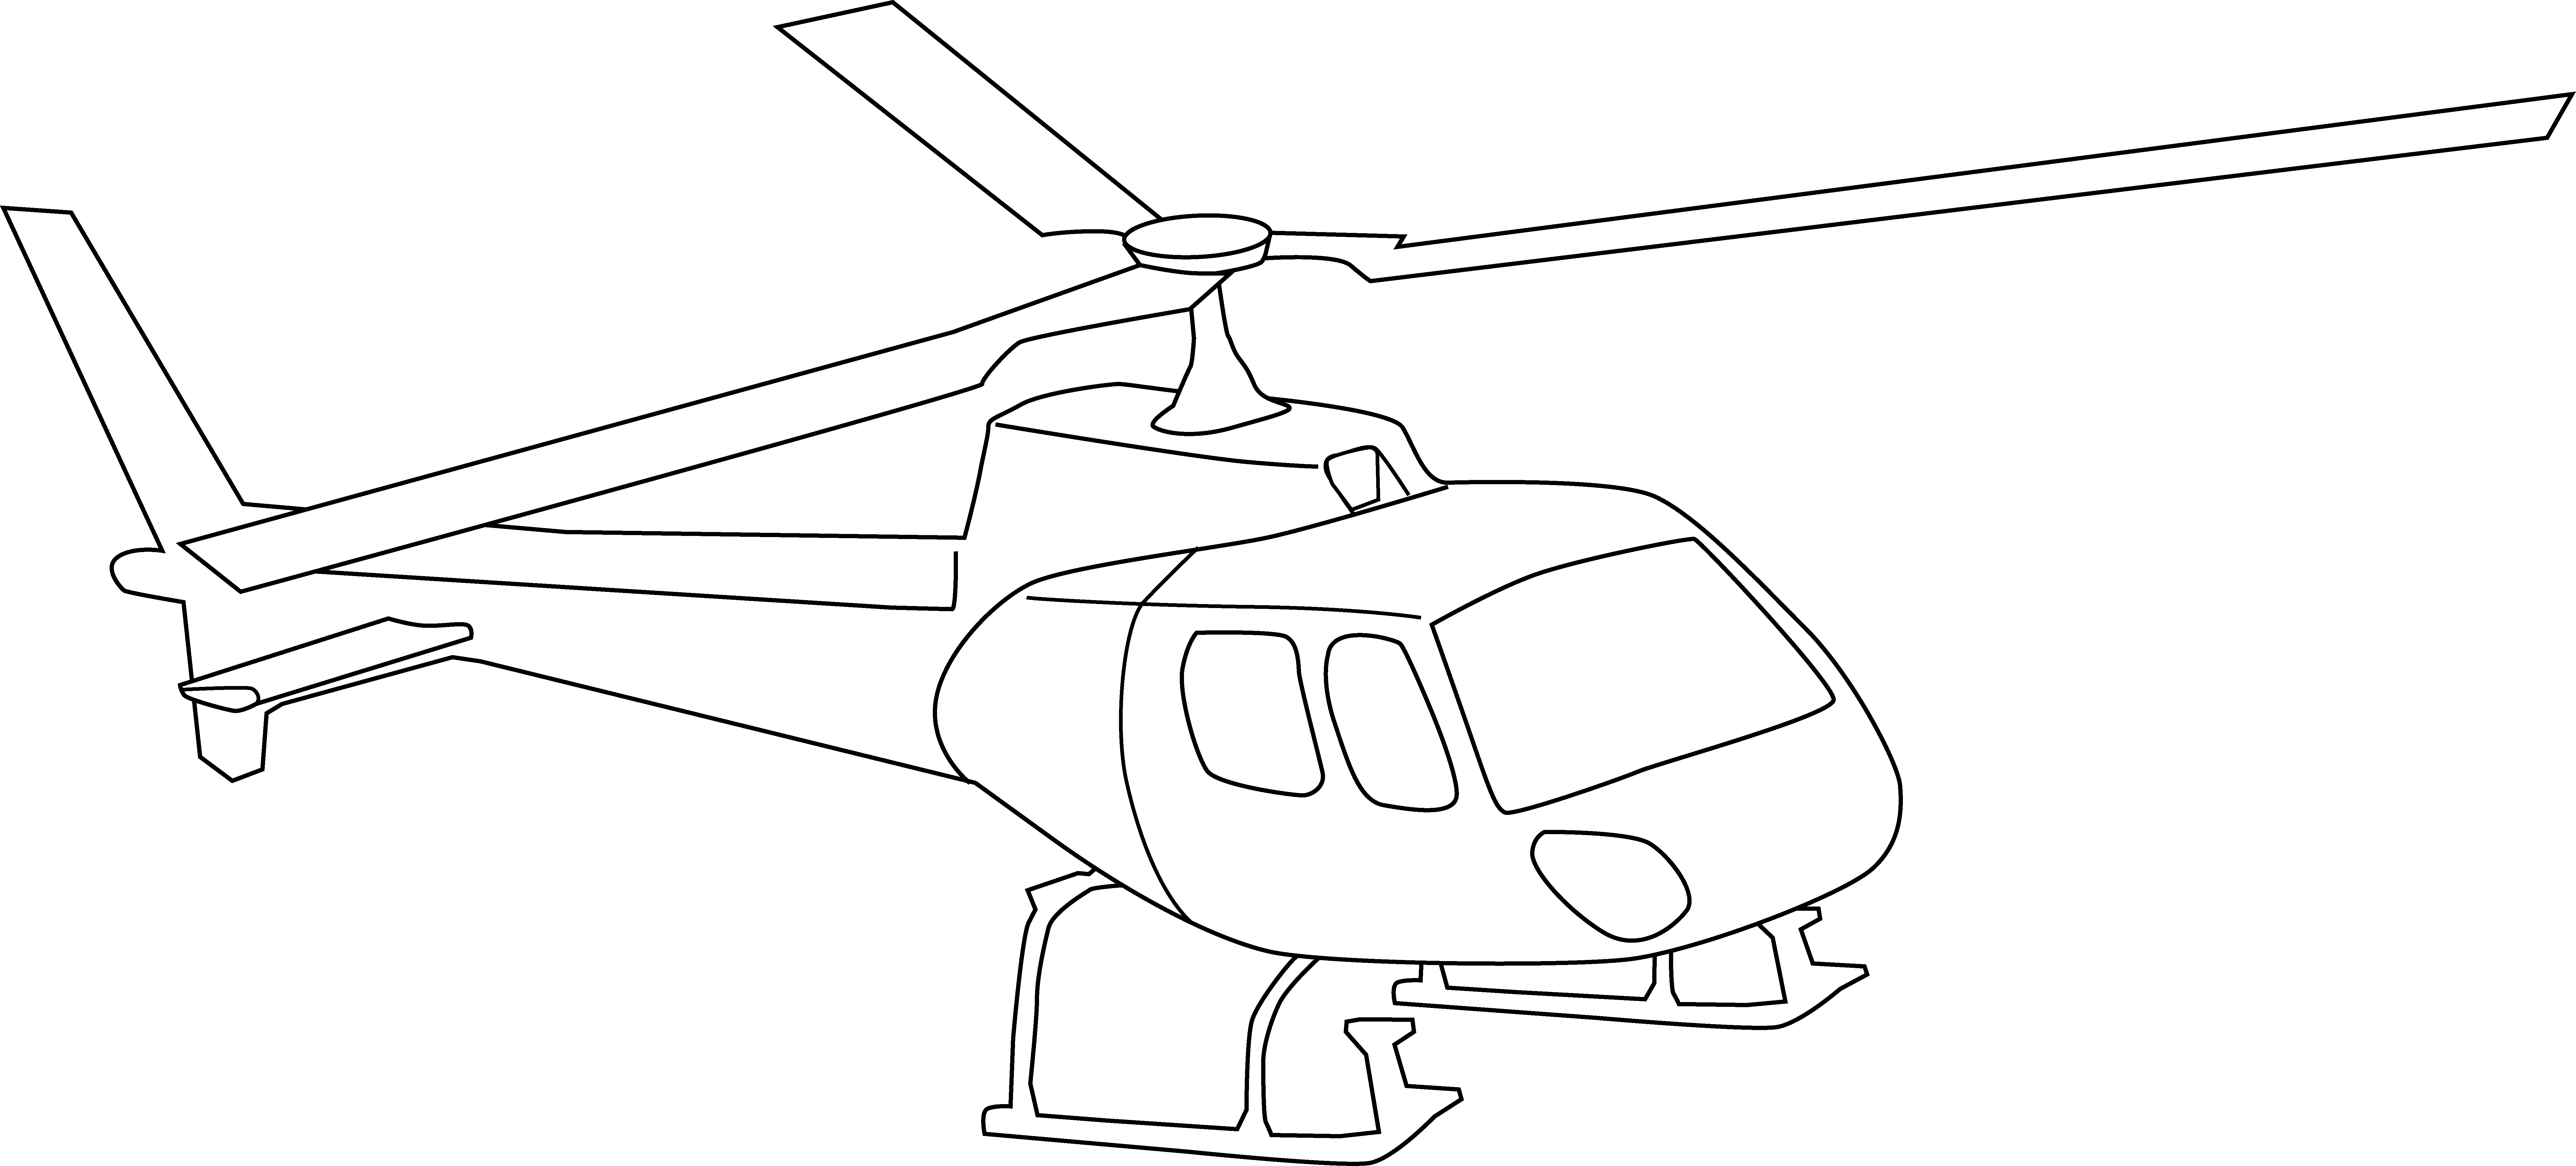 Helicopter coloring page free. Military clipart helecopter